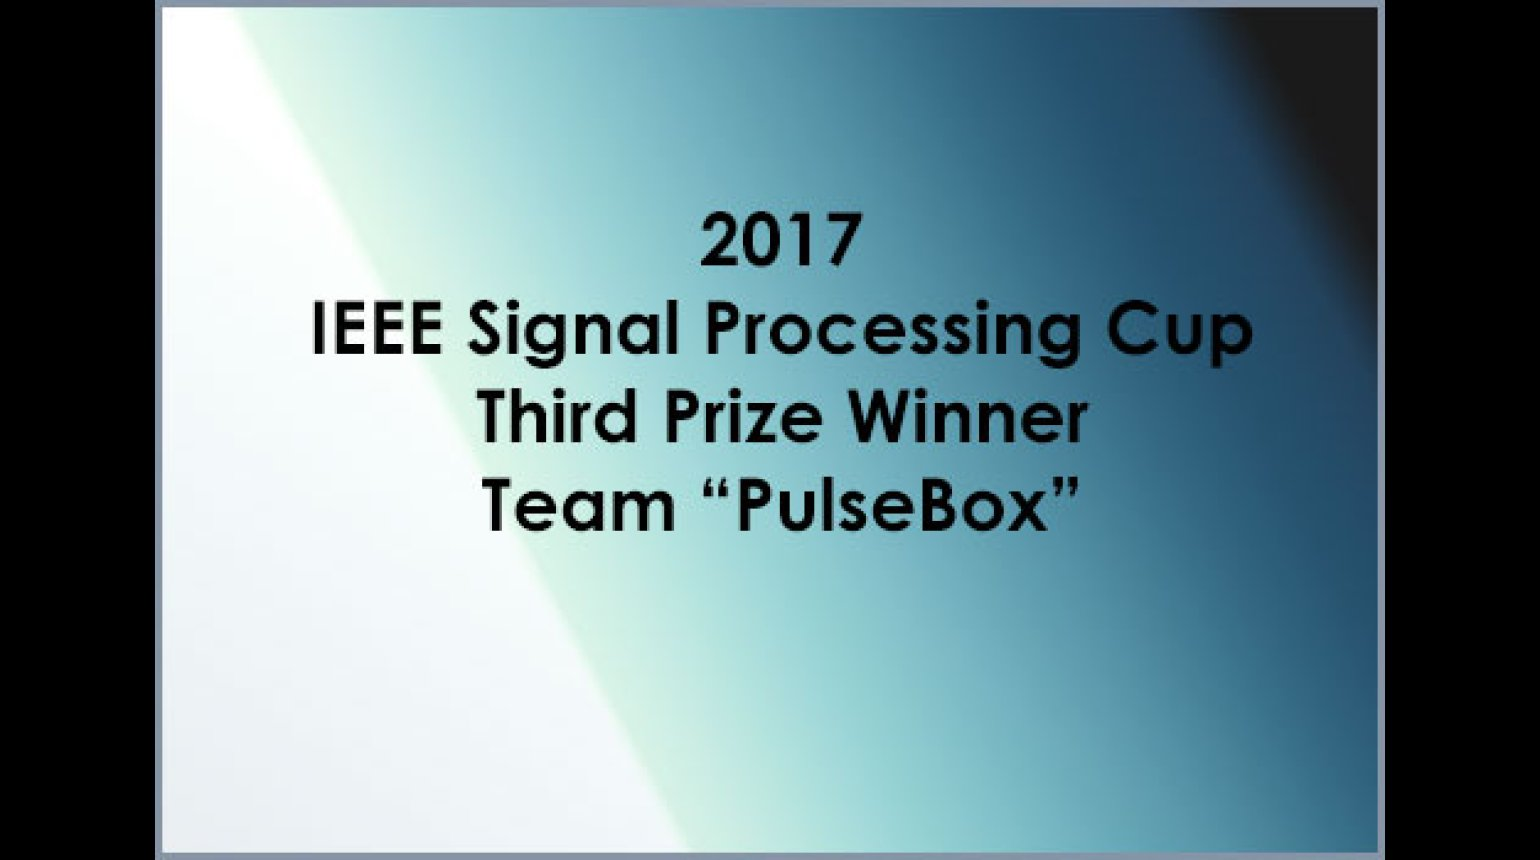 IEEE SP Cup 2017: Third Prize - Team PulseBox